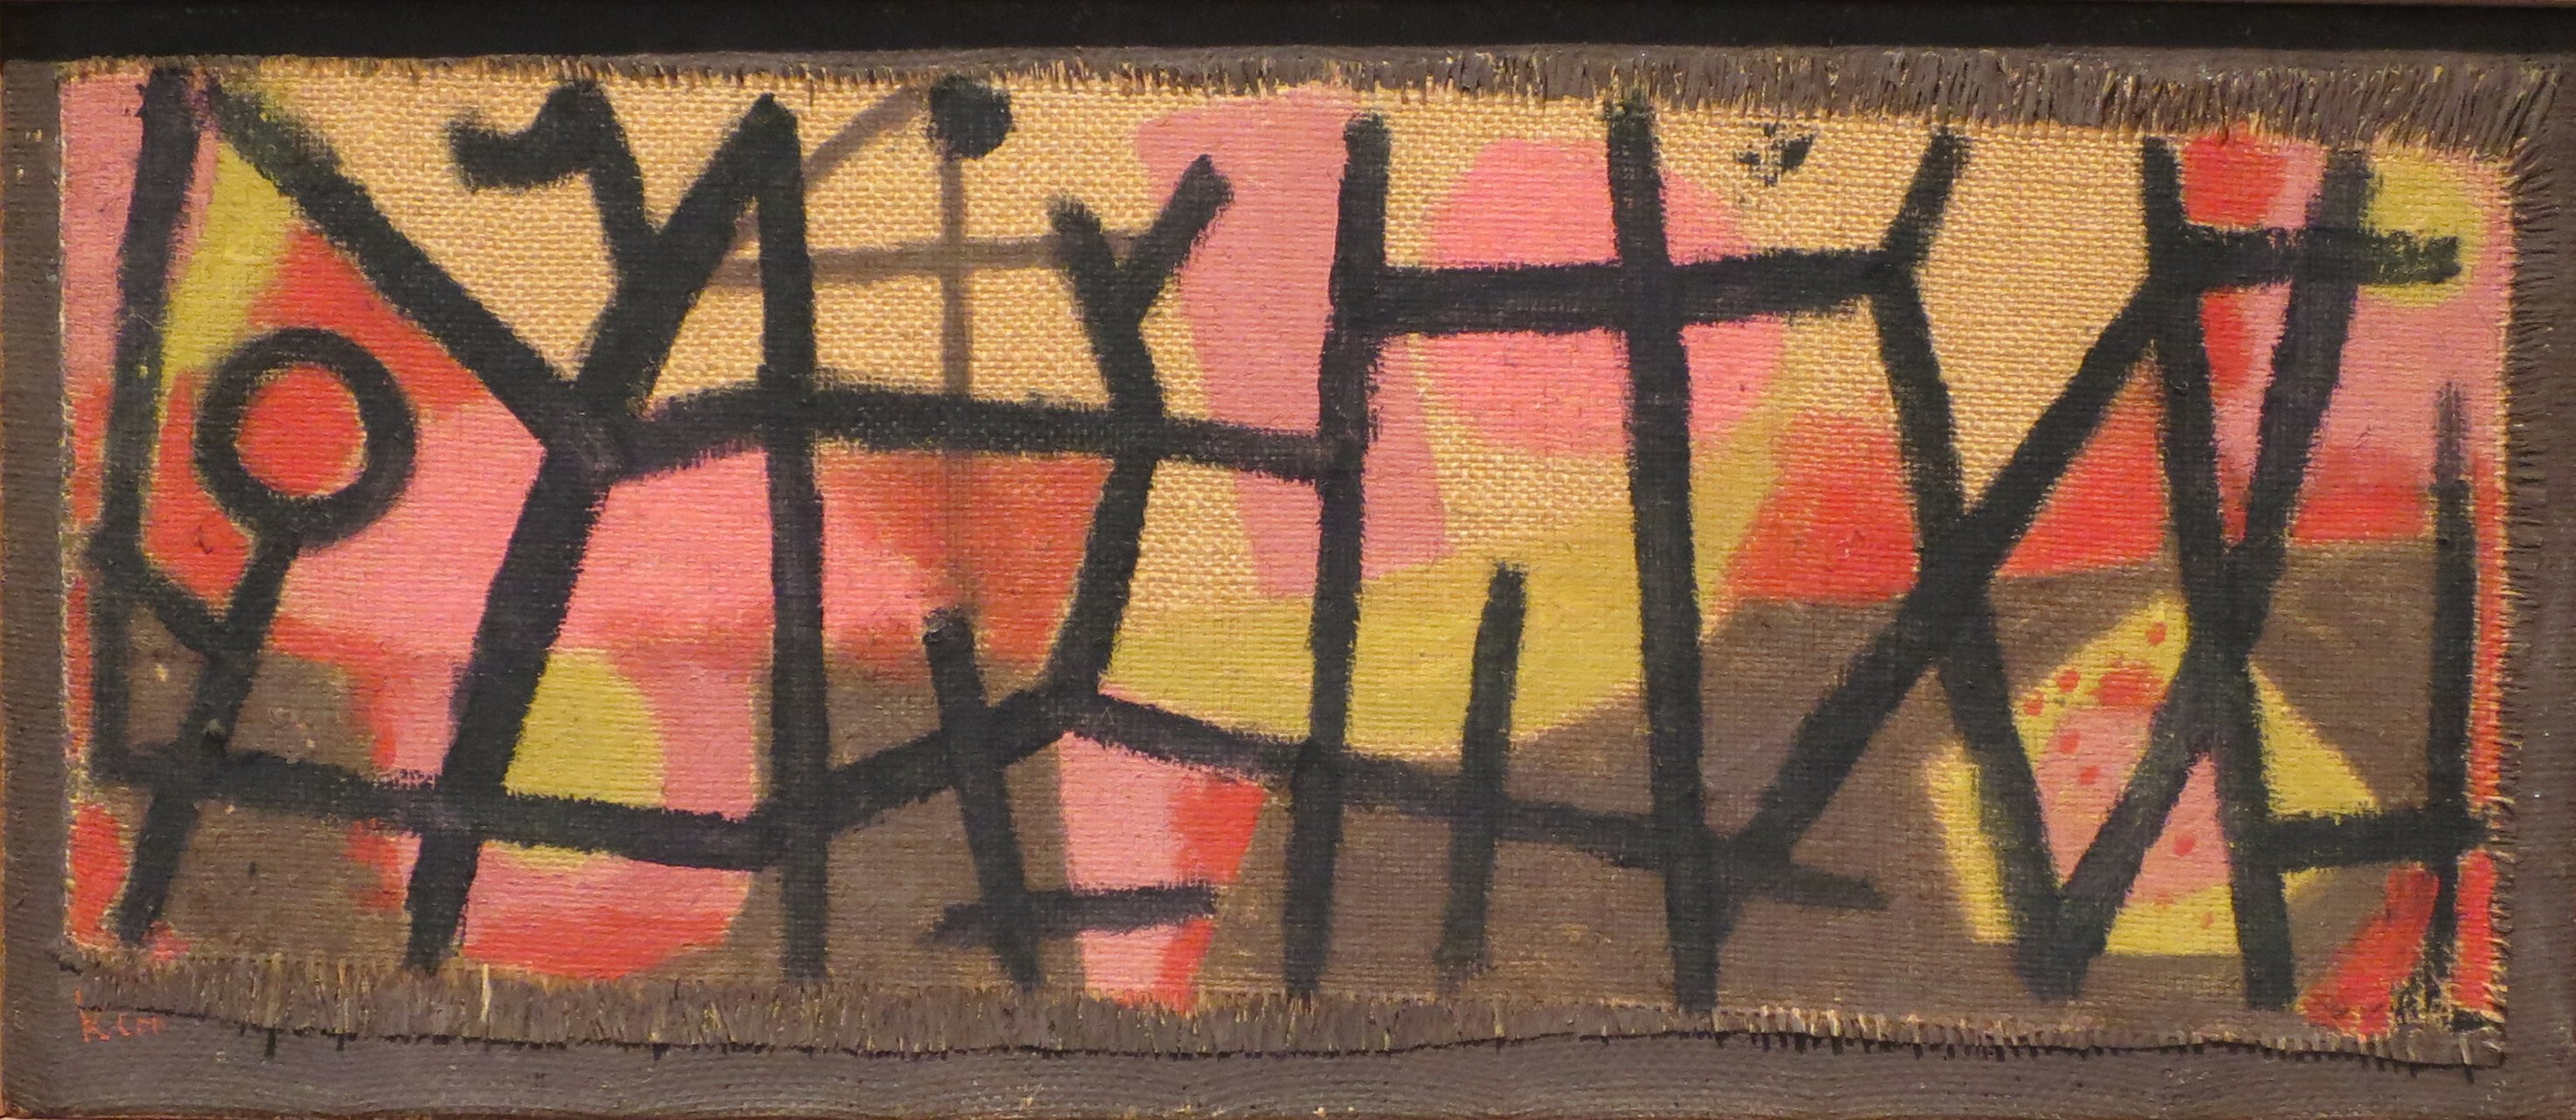 File Enclosure For Pachyderms By Paul Klee 1940 Jpg